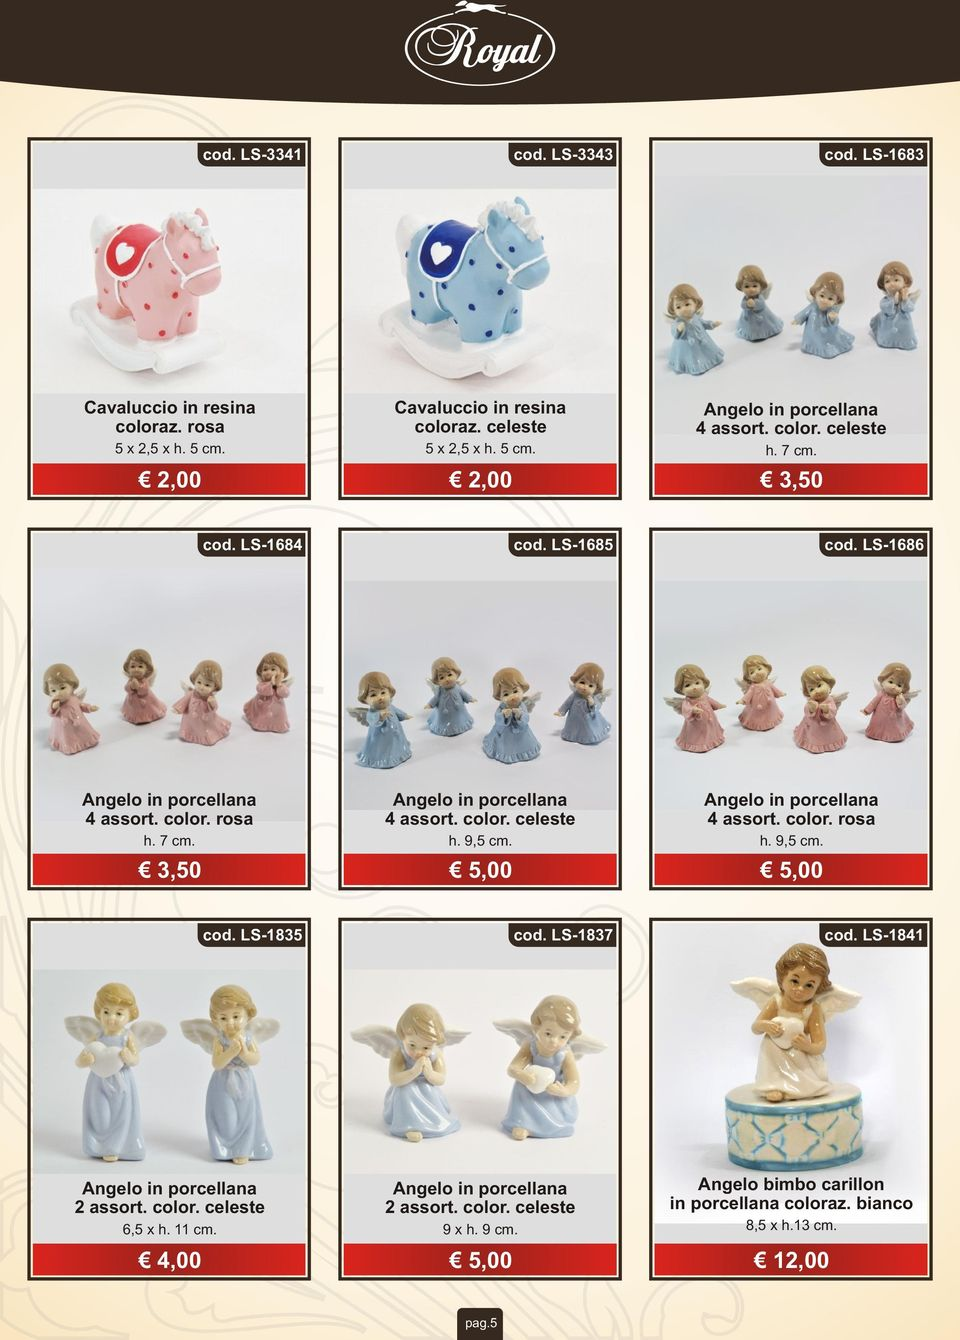 5,00 Angelo in porcellana 4 assort. color. rosa h. 9,5 cm. 5,00 cod. LS-1835 cod. LS-1837 cod. LS-1841 Angelo in porcellana 2 assort. color. celeste 6,5 x h. 11 cm.